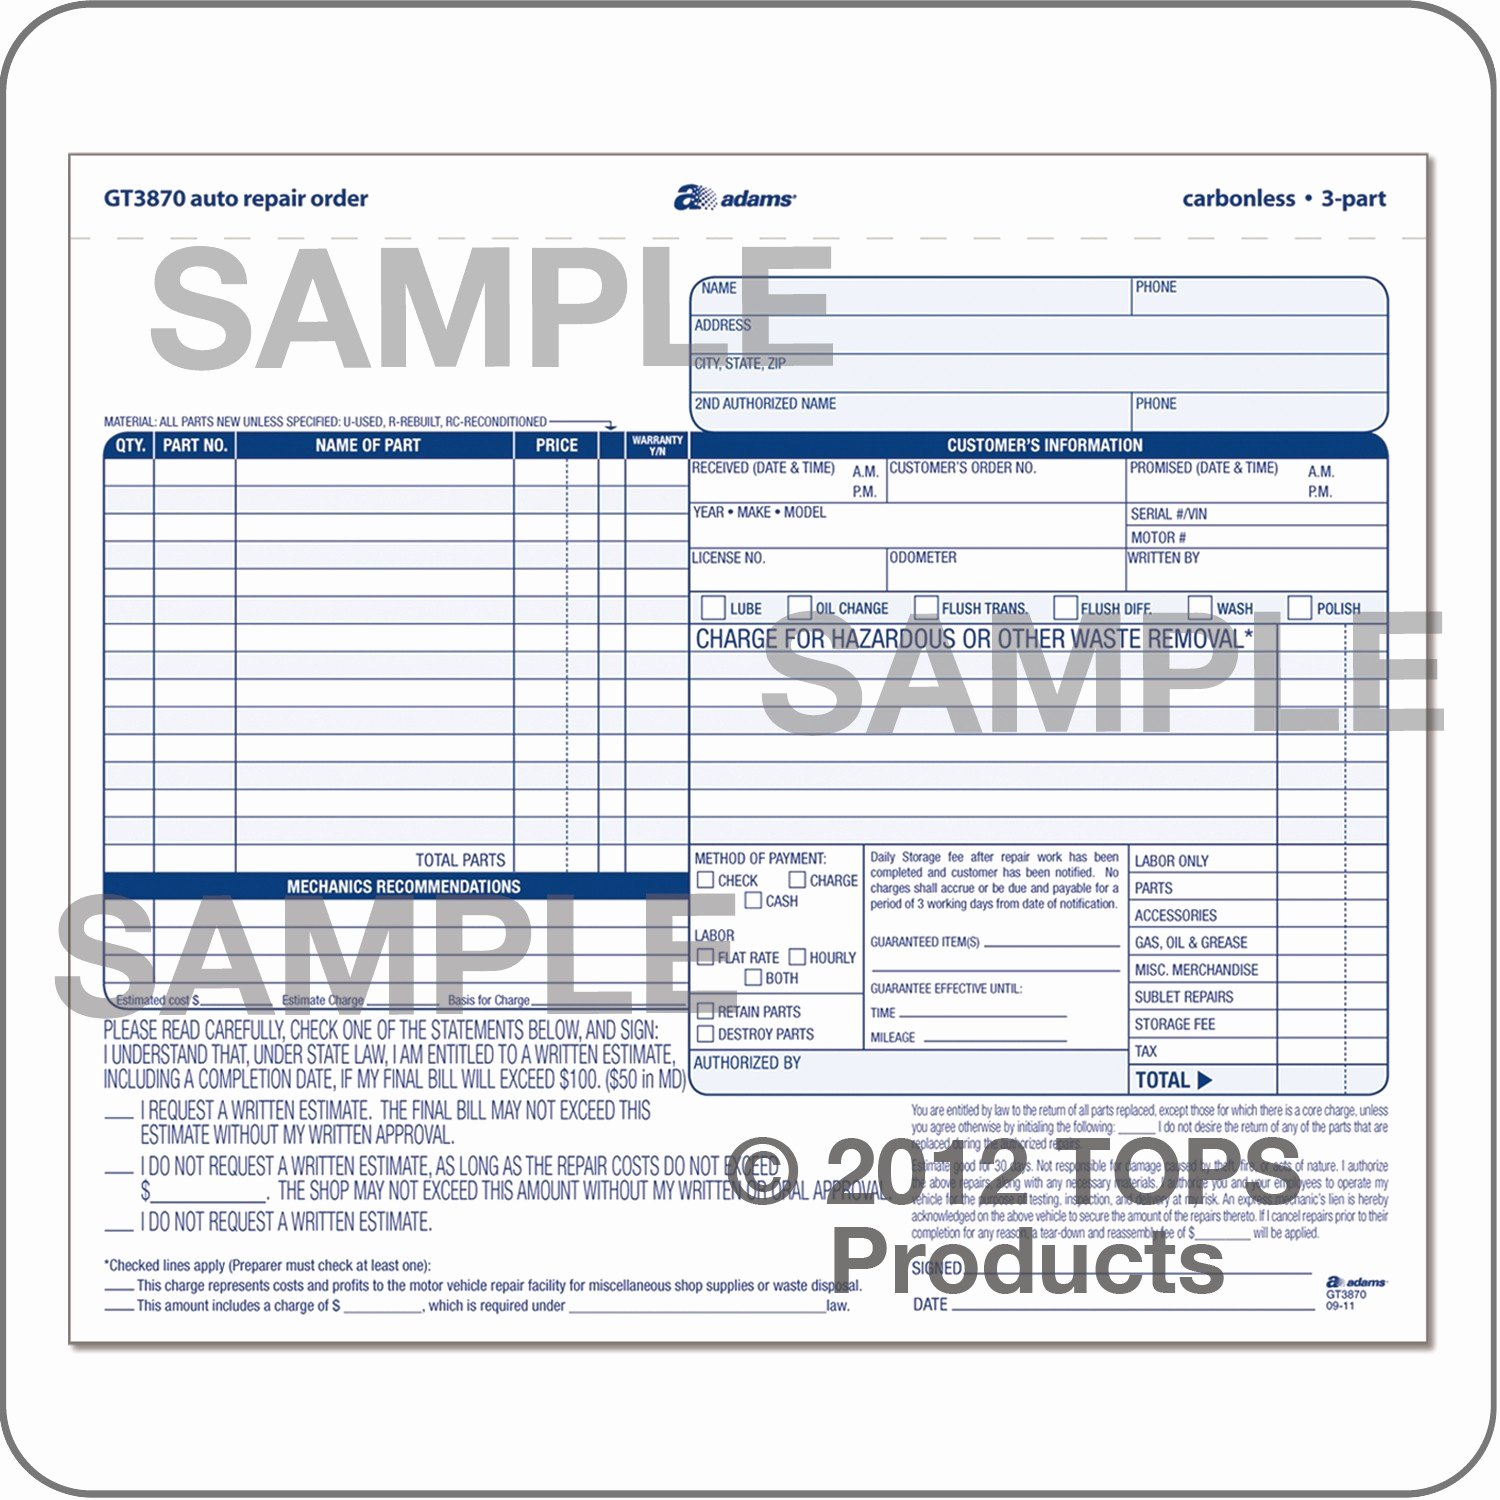 Automotive Work order Template Fresh Auto Repair order 3 Part Carbonless